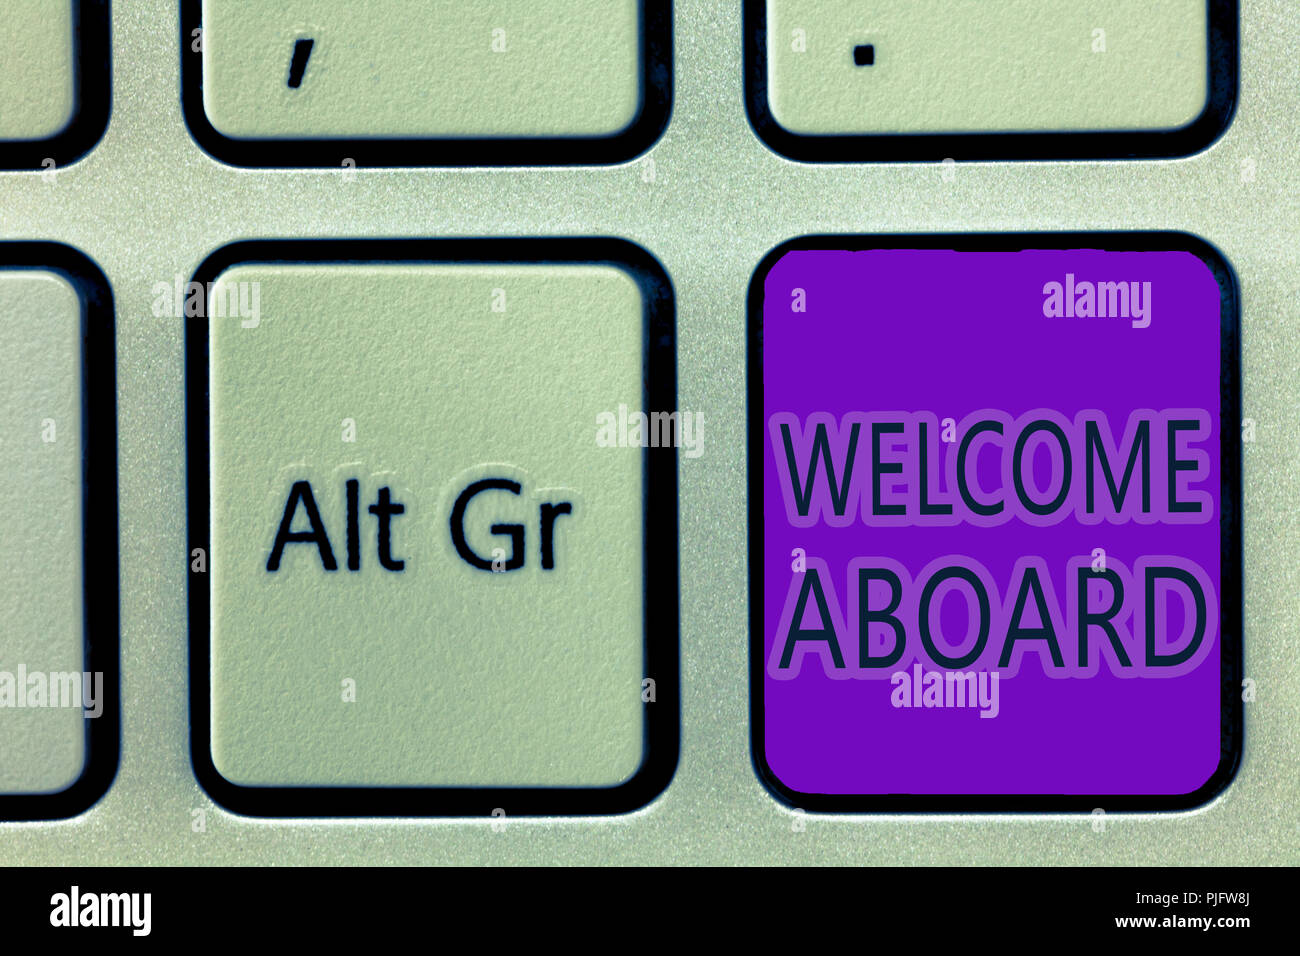 Welcome Aboard Concept Stock Photos Welcome Aboard Concept Stock